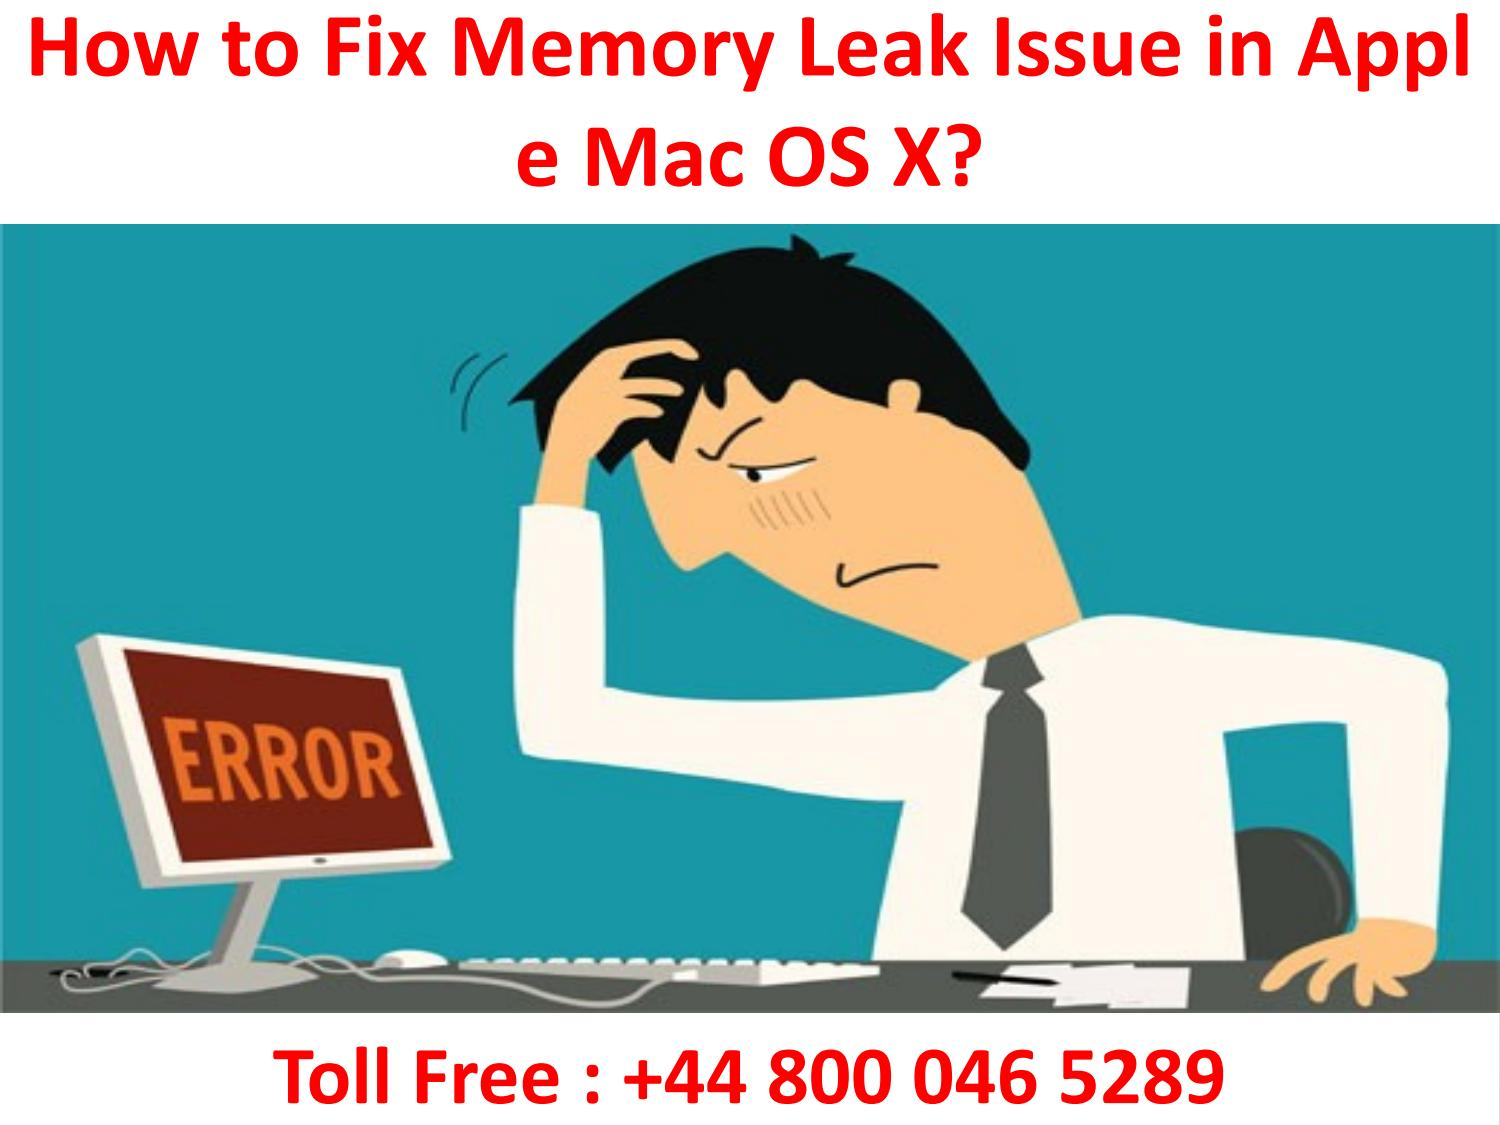 +44-800-046-5289 Steps to Fix Memory Leak Issue in Mac OS X? +44-800-046-5289 Steps to Fix Memory Leak Issue in Mac OS X?